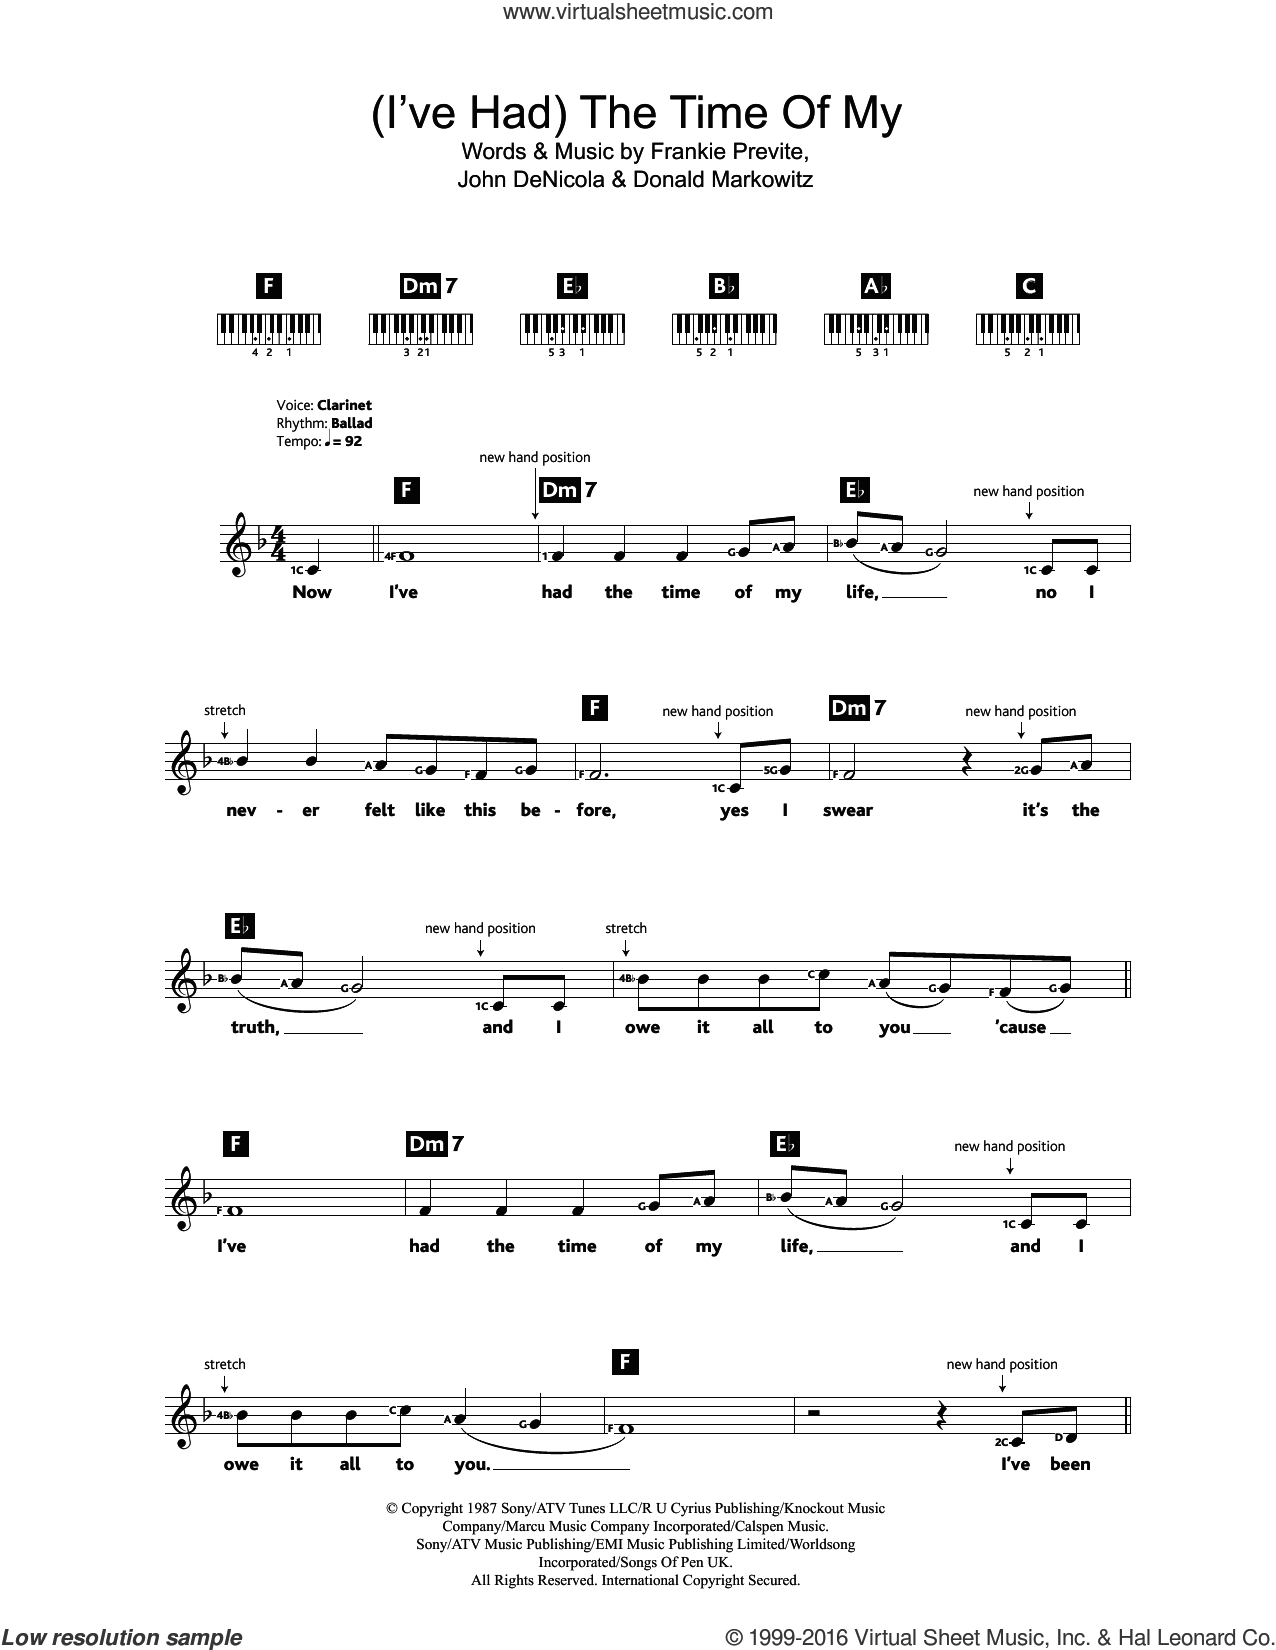 (I've Had) The Time Of My Life sheet music for piano solo (chords, lyrics, melody) by Bill Medley, Jennifer Warnes, Donald Markowitz, Frankie Previte and John DeNicola, intermediate piano (chords, lyrics, melody)